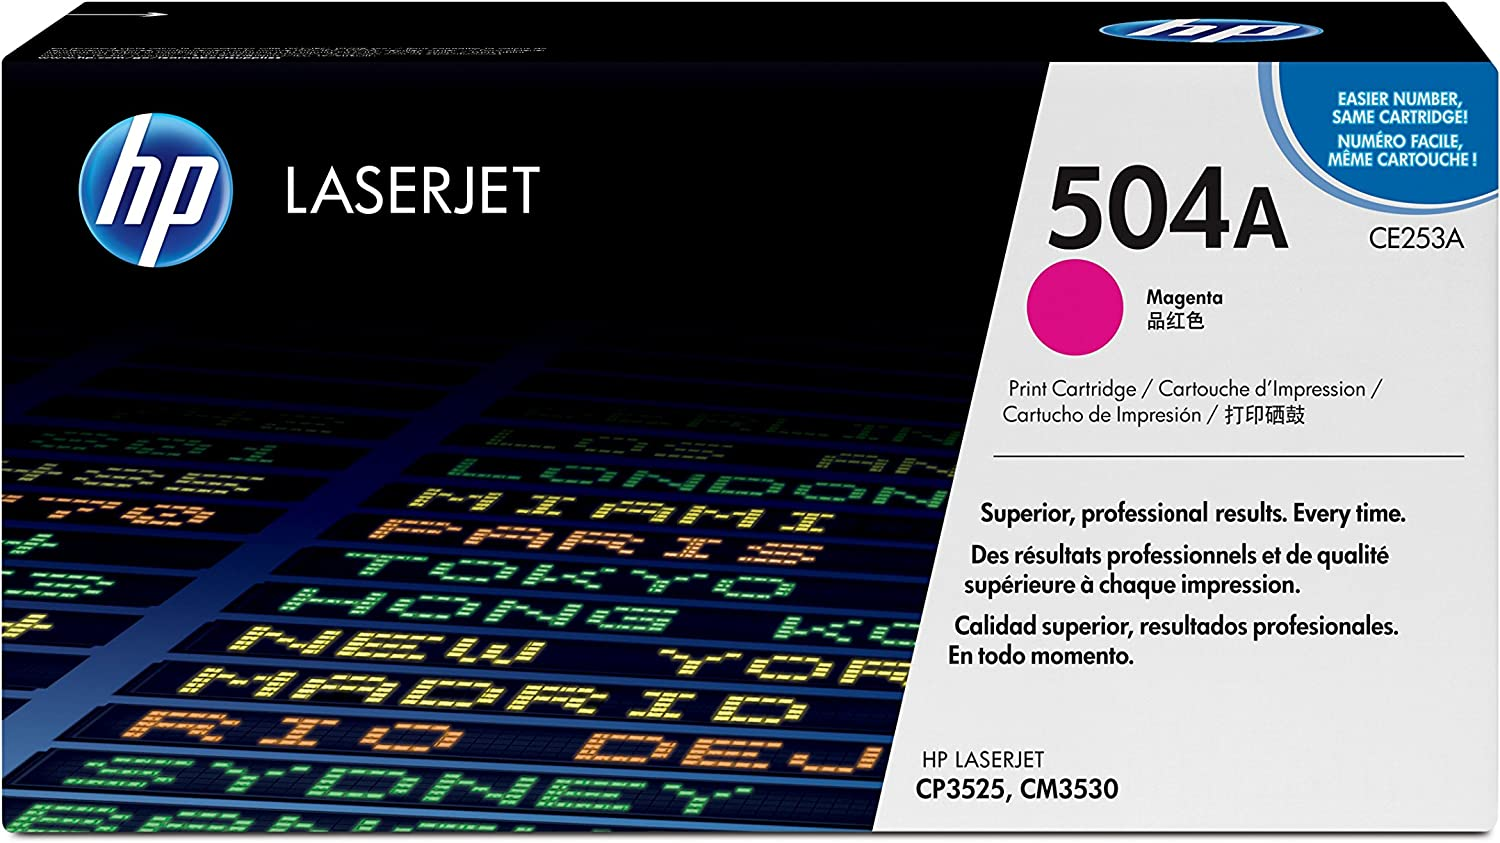 HP 504A | CE253A | Toner Cartridge | Magenta